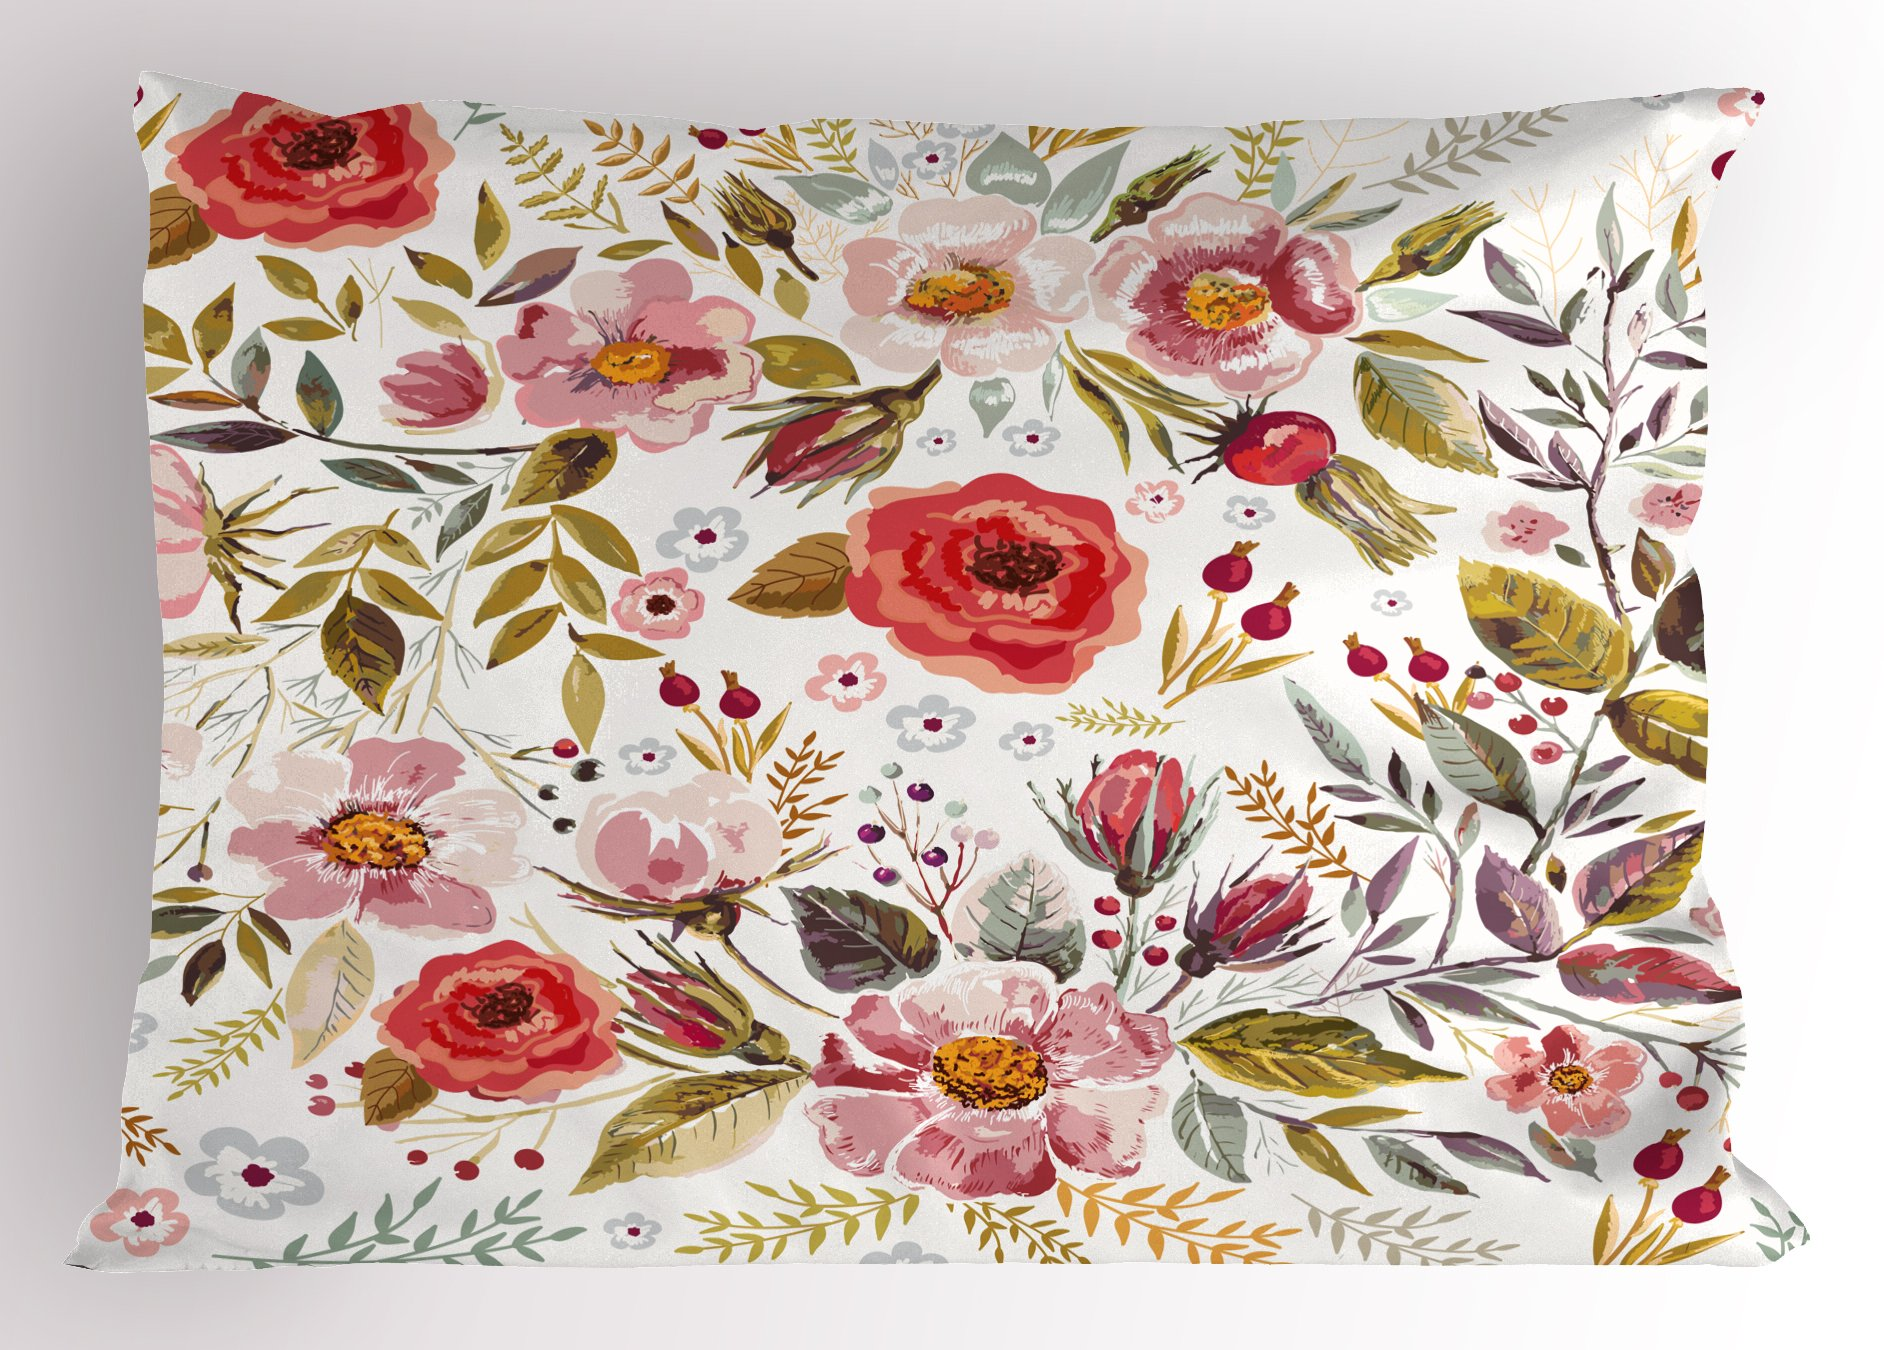 Lunarable Vintage Pillow Sham, Floral Theme Hand Drawn Romantic Flowers and Leaves Illustration, Decorative Standard Size Printed Pillowcase, 26 X 20 Inches, Light Pink Red and Cream